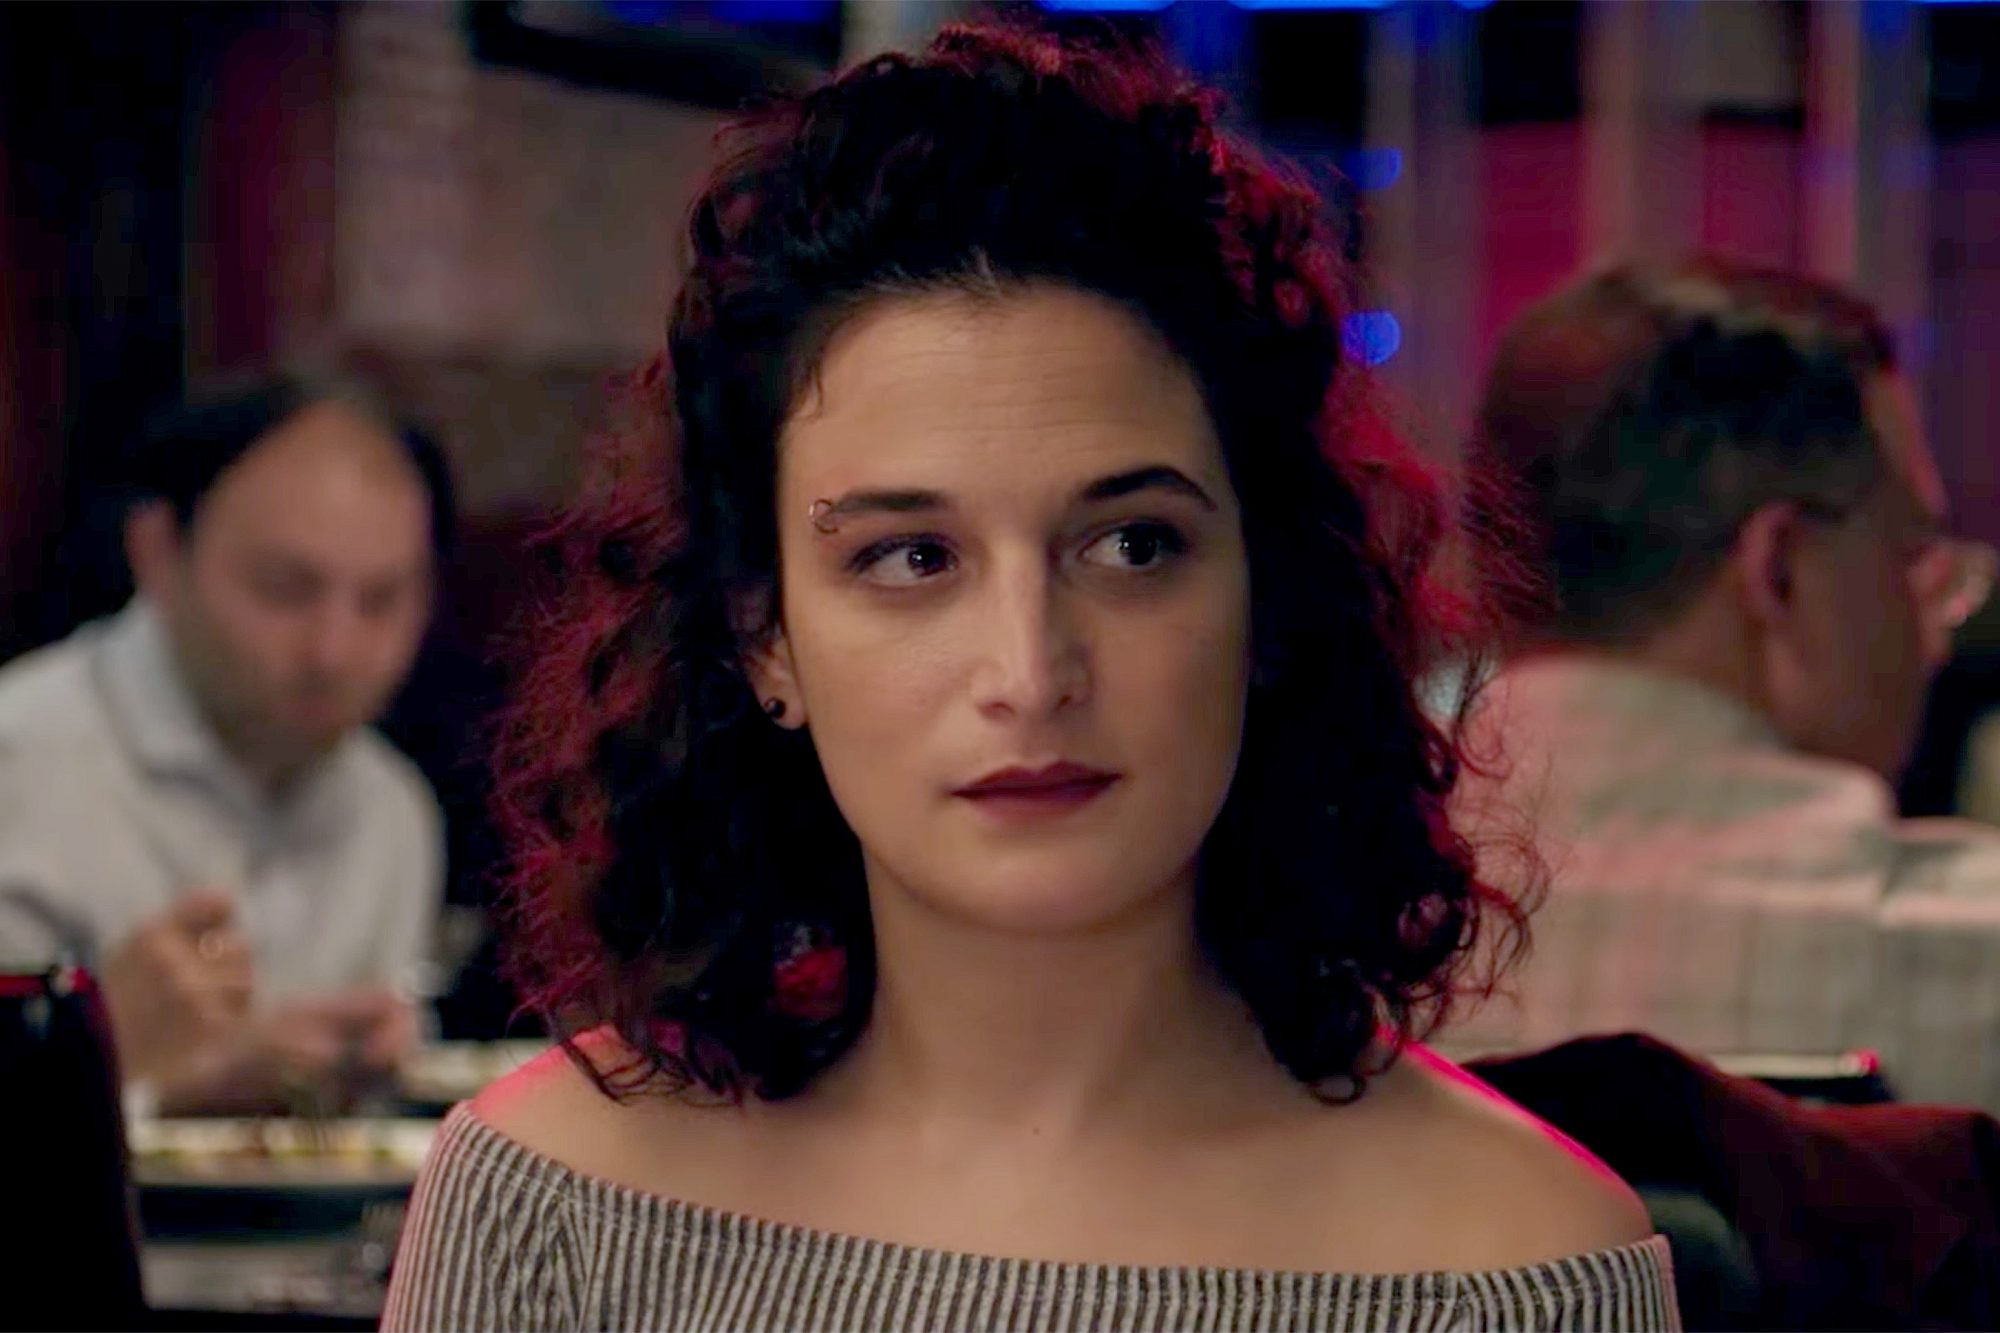 Jenny Slate on Hummus, the Pottery Scene in Ghost, and Trying Not to Hate Horses